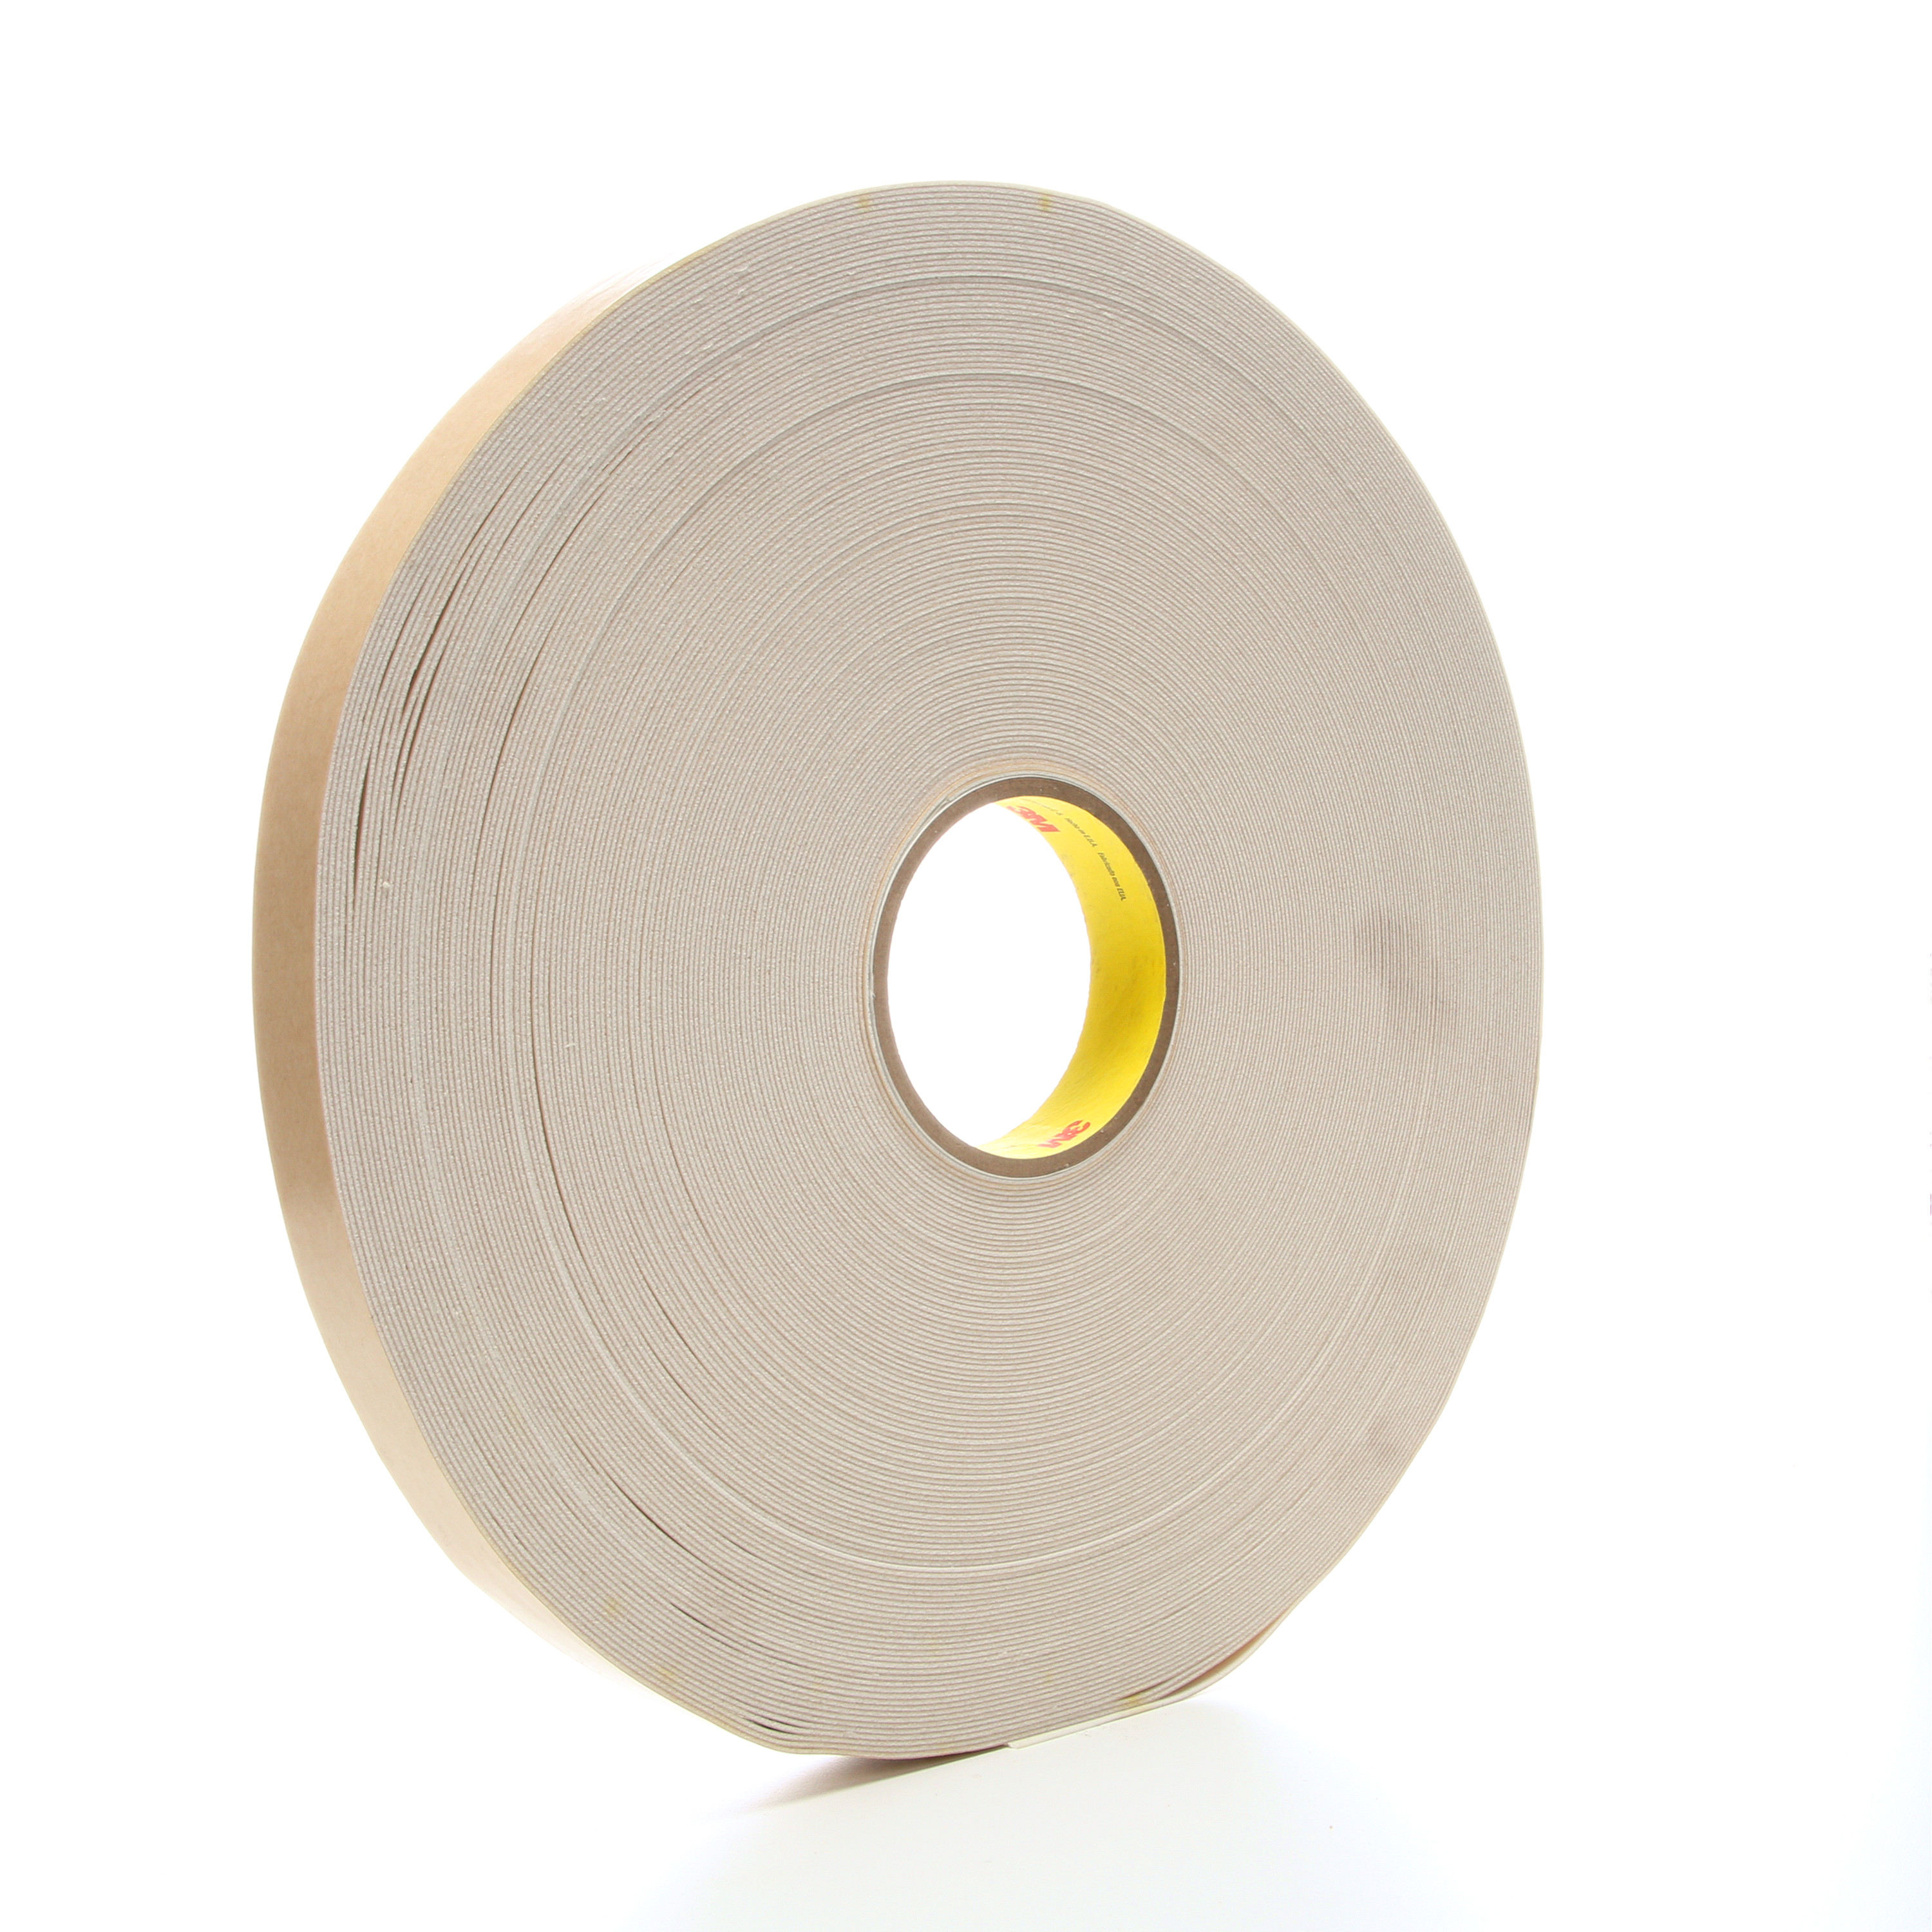 3M™ Double Coated Urethane Foam Tape 4085, Natural, 1 in x 72 yd, 45 mil, 9 rolls per case